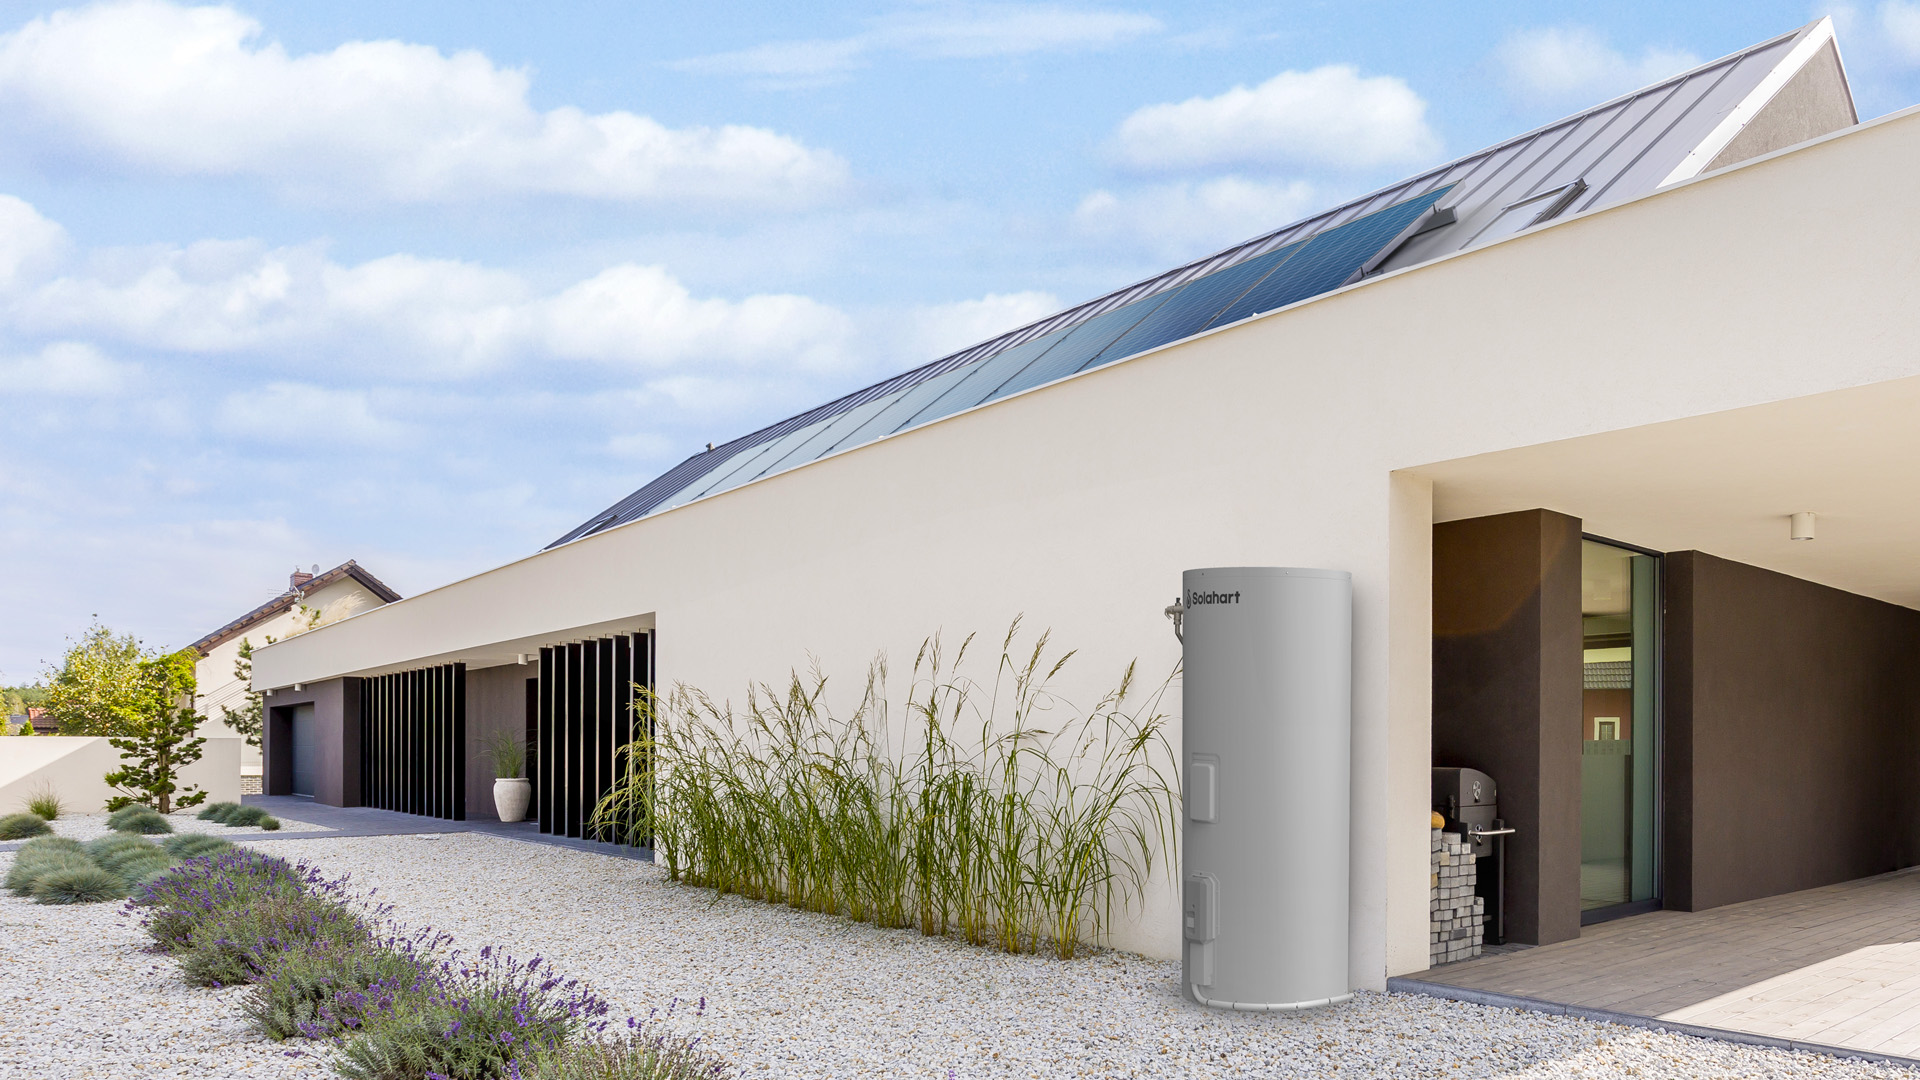 Solahart Energy Storage Systems